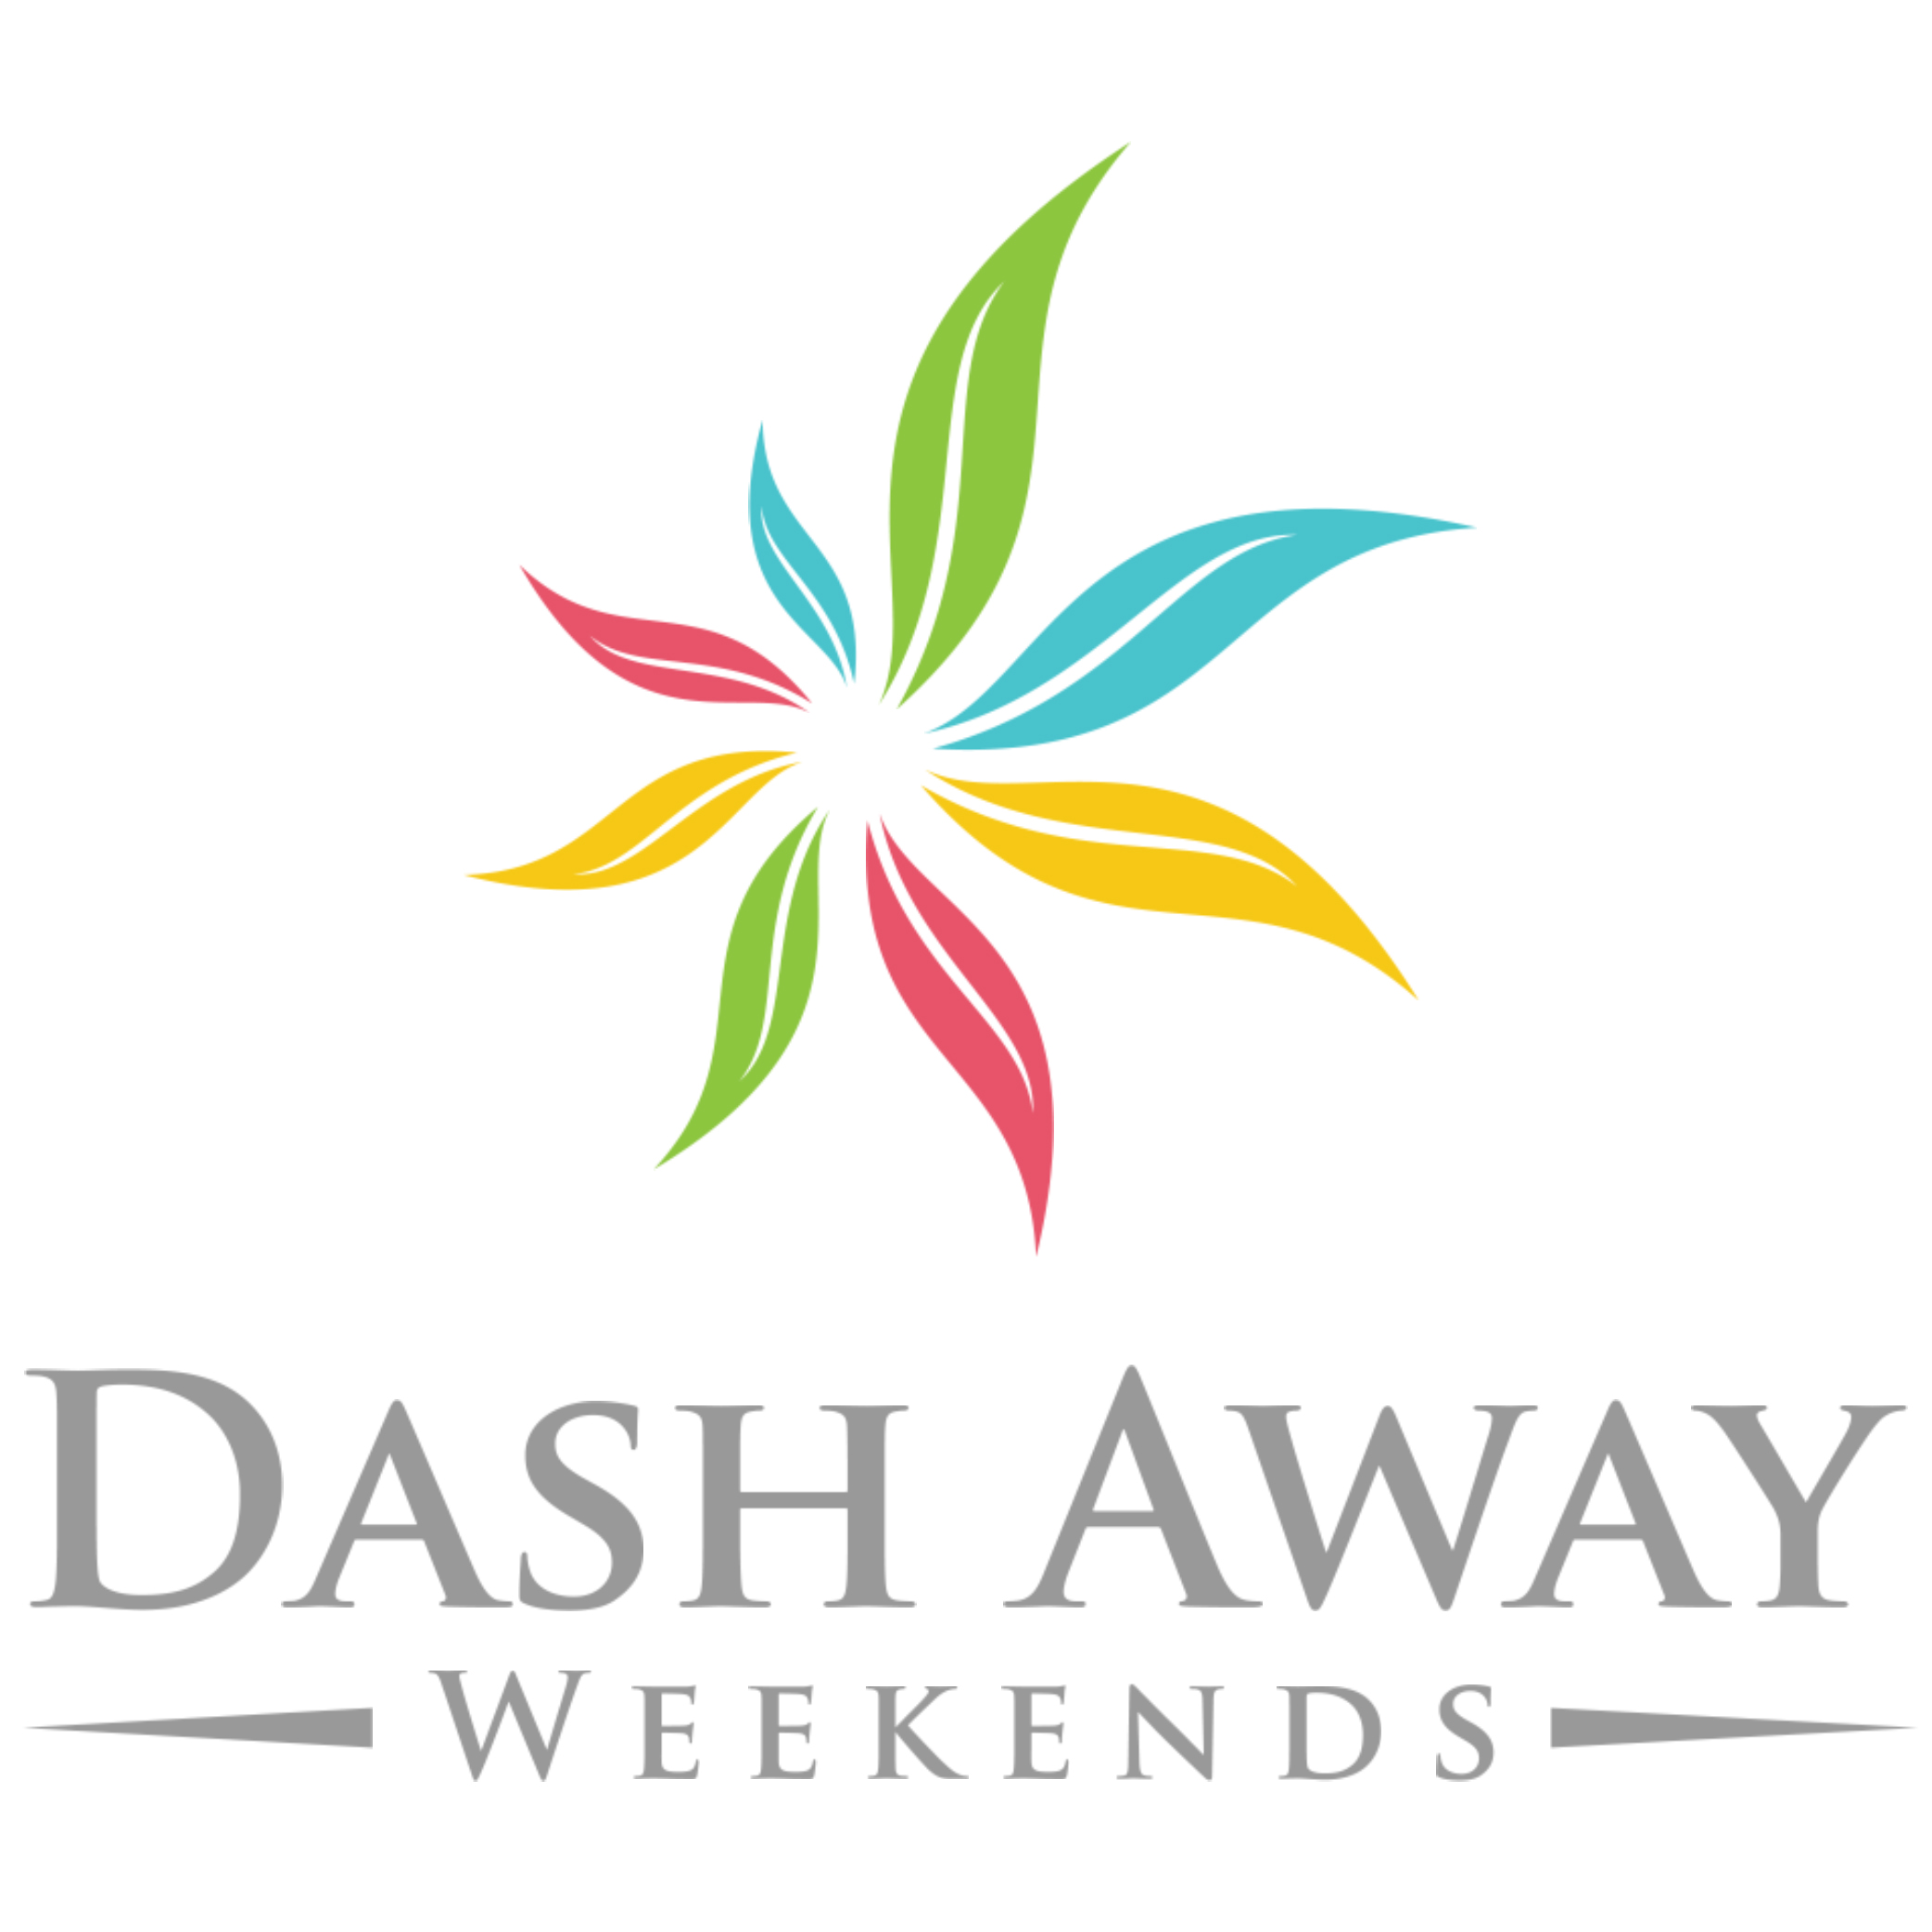 Dash Away Weekends-2084px.jpg